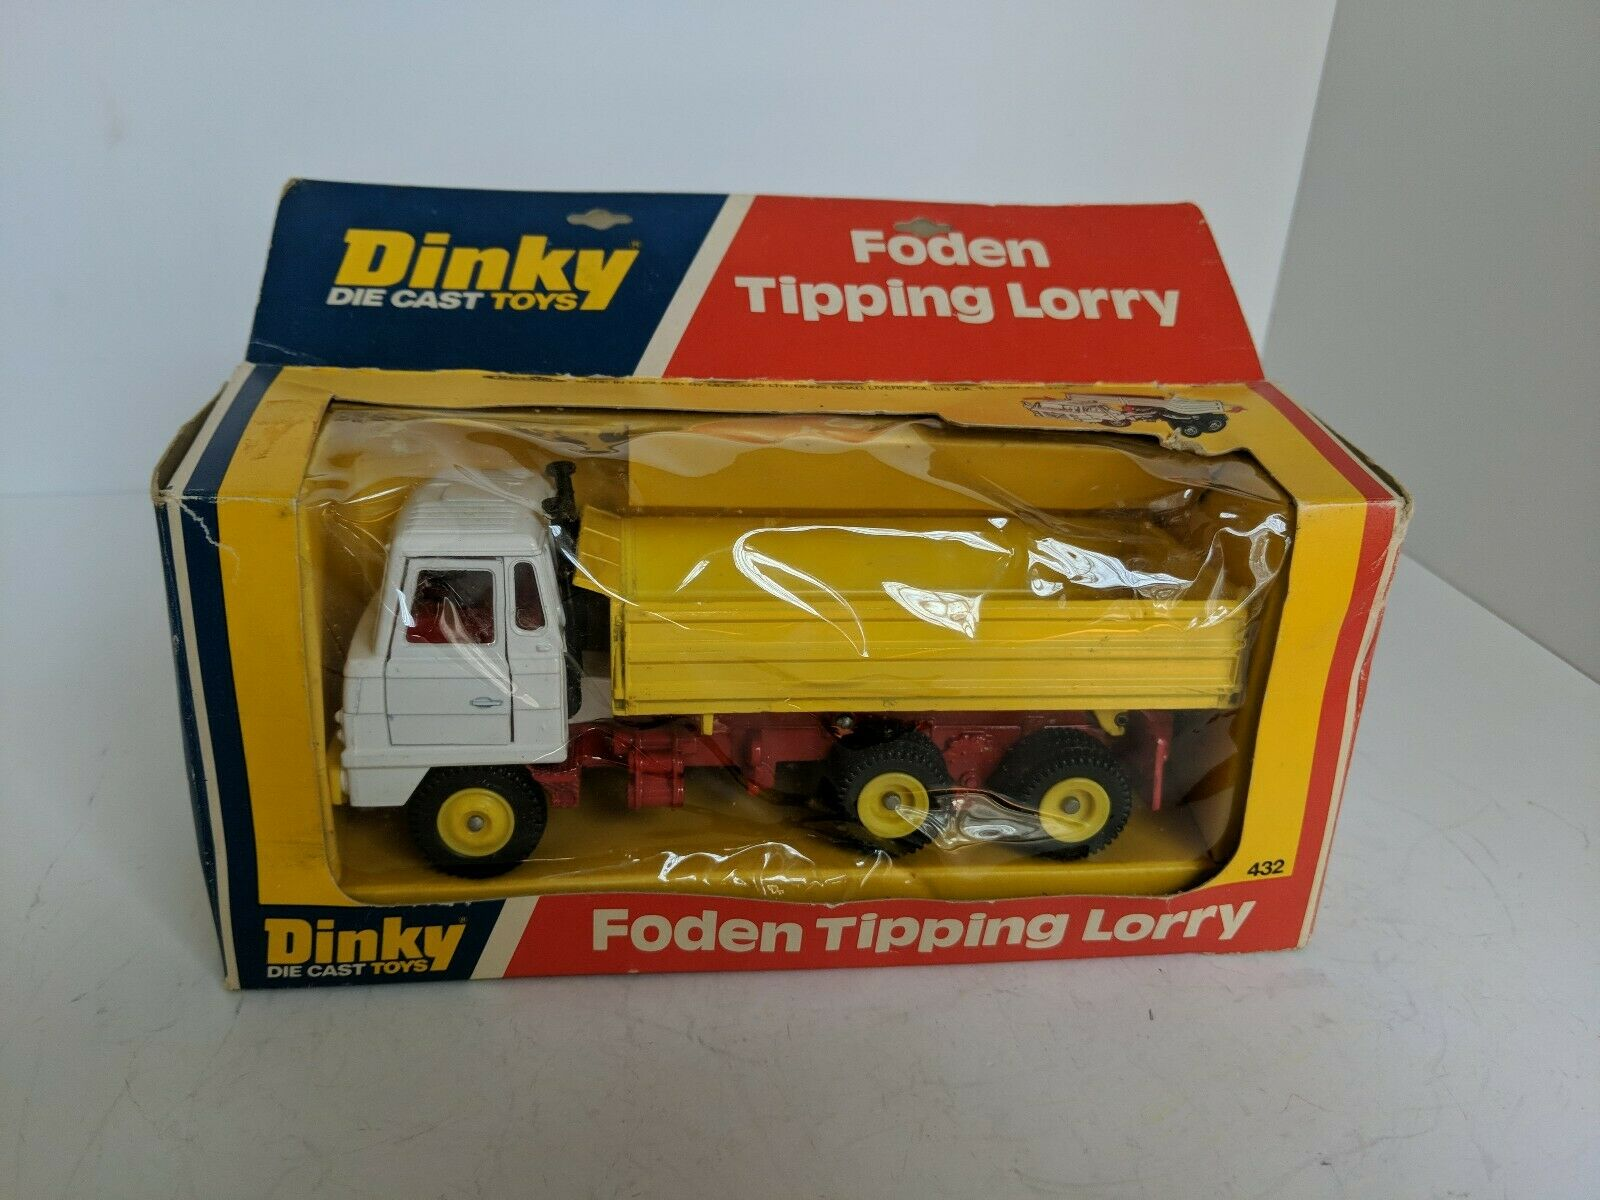 Dinky Toys 432 Foden Tippen Lorry with Box Mint Dump Truck 1976-79